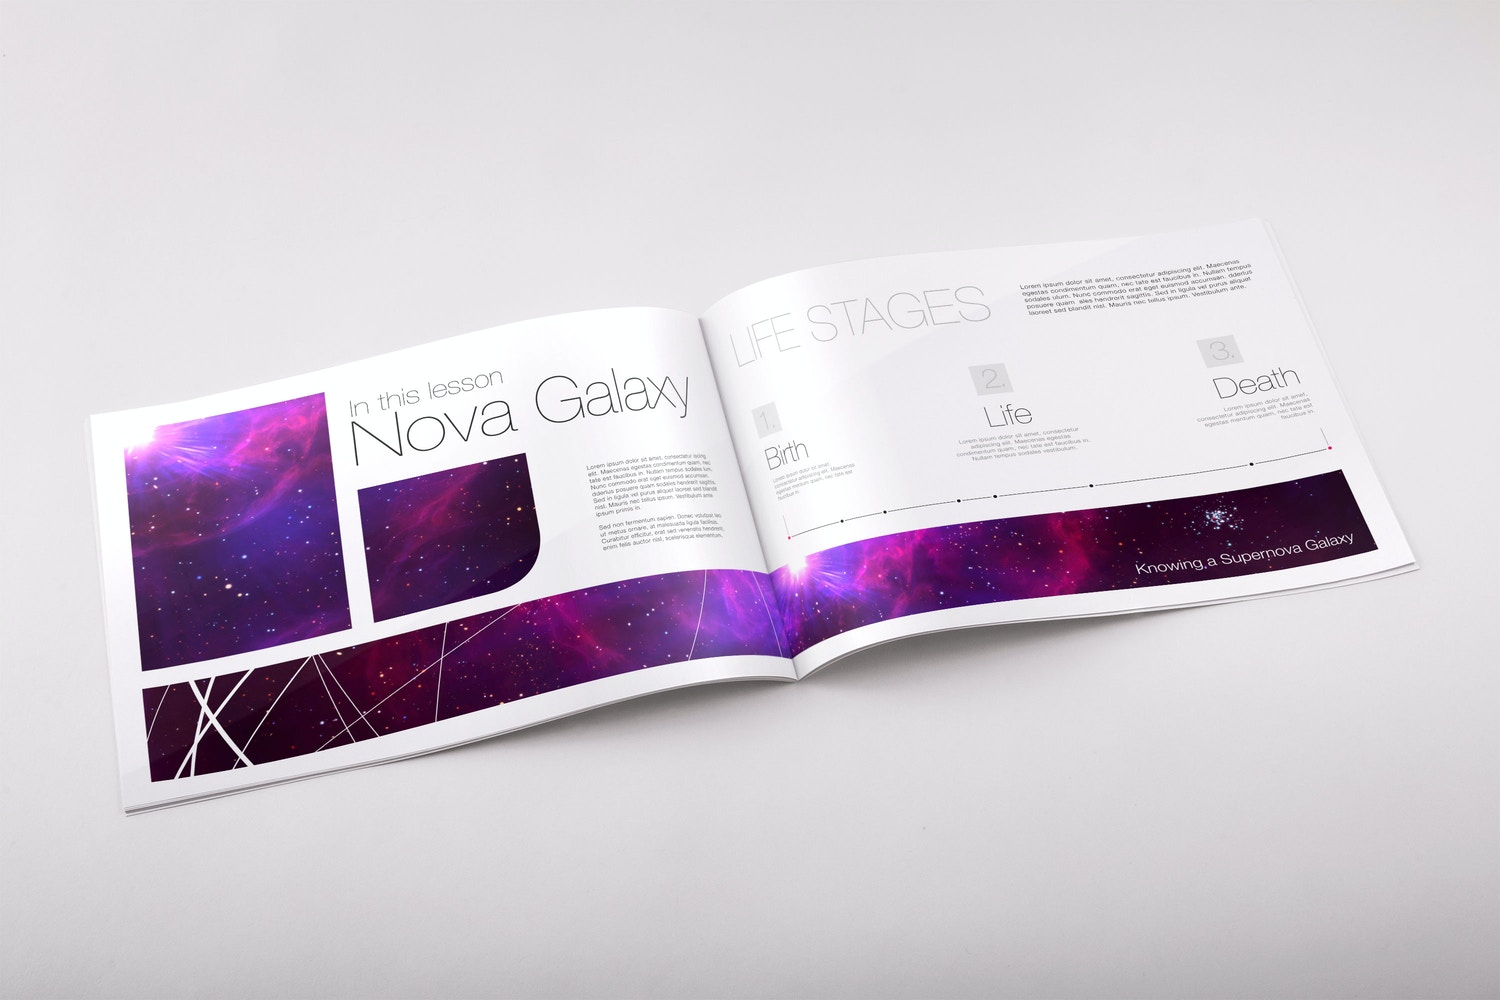 Softcover Landscape Catalog PSD Mockup 02 by Original Mockups on Original Mockups